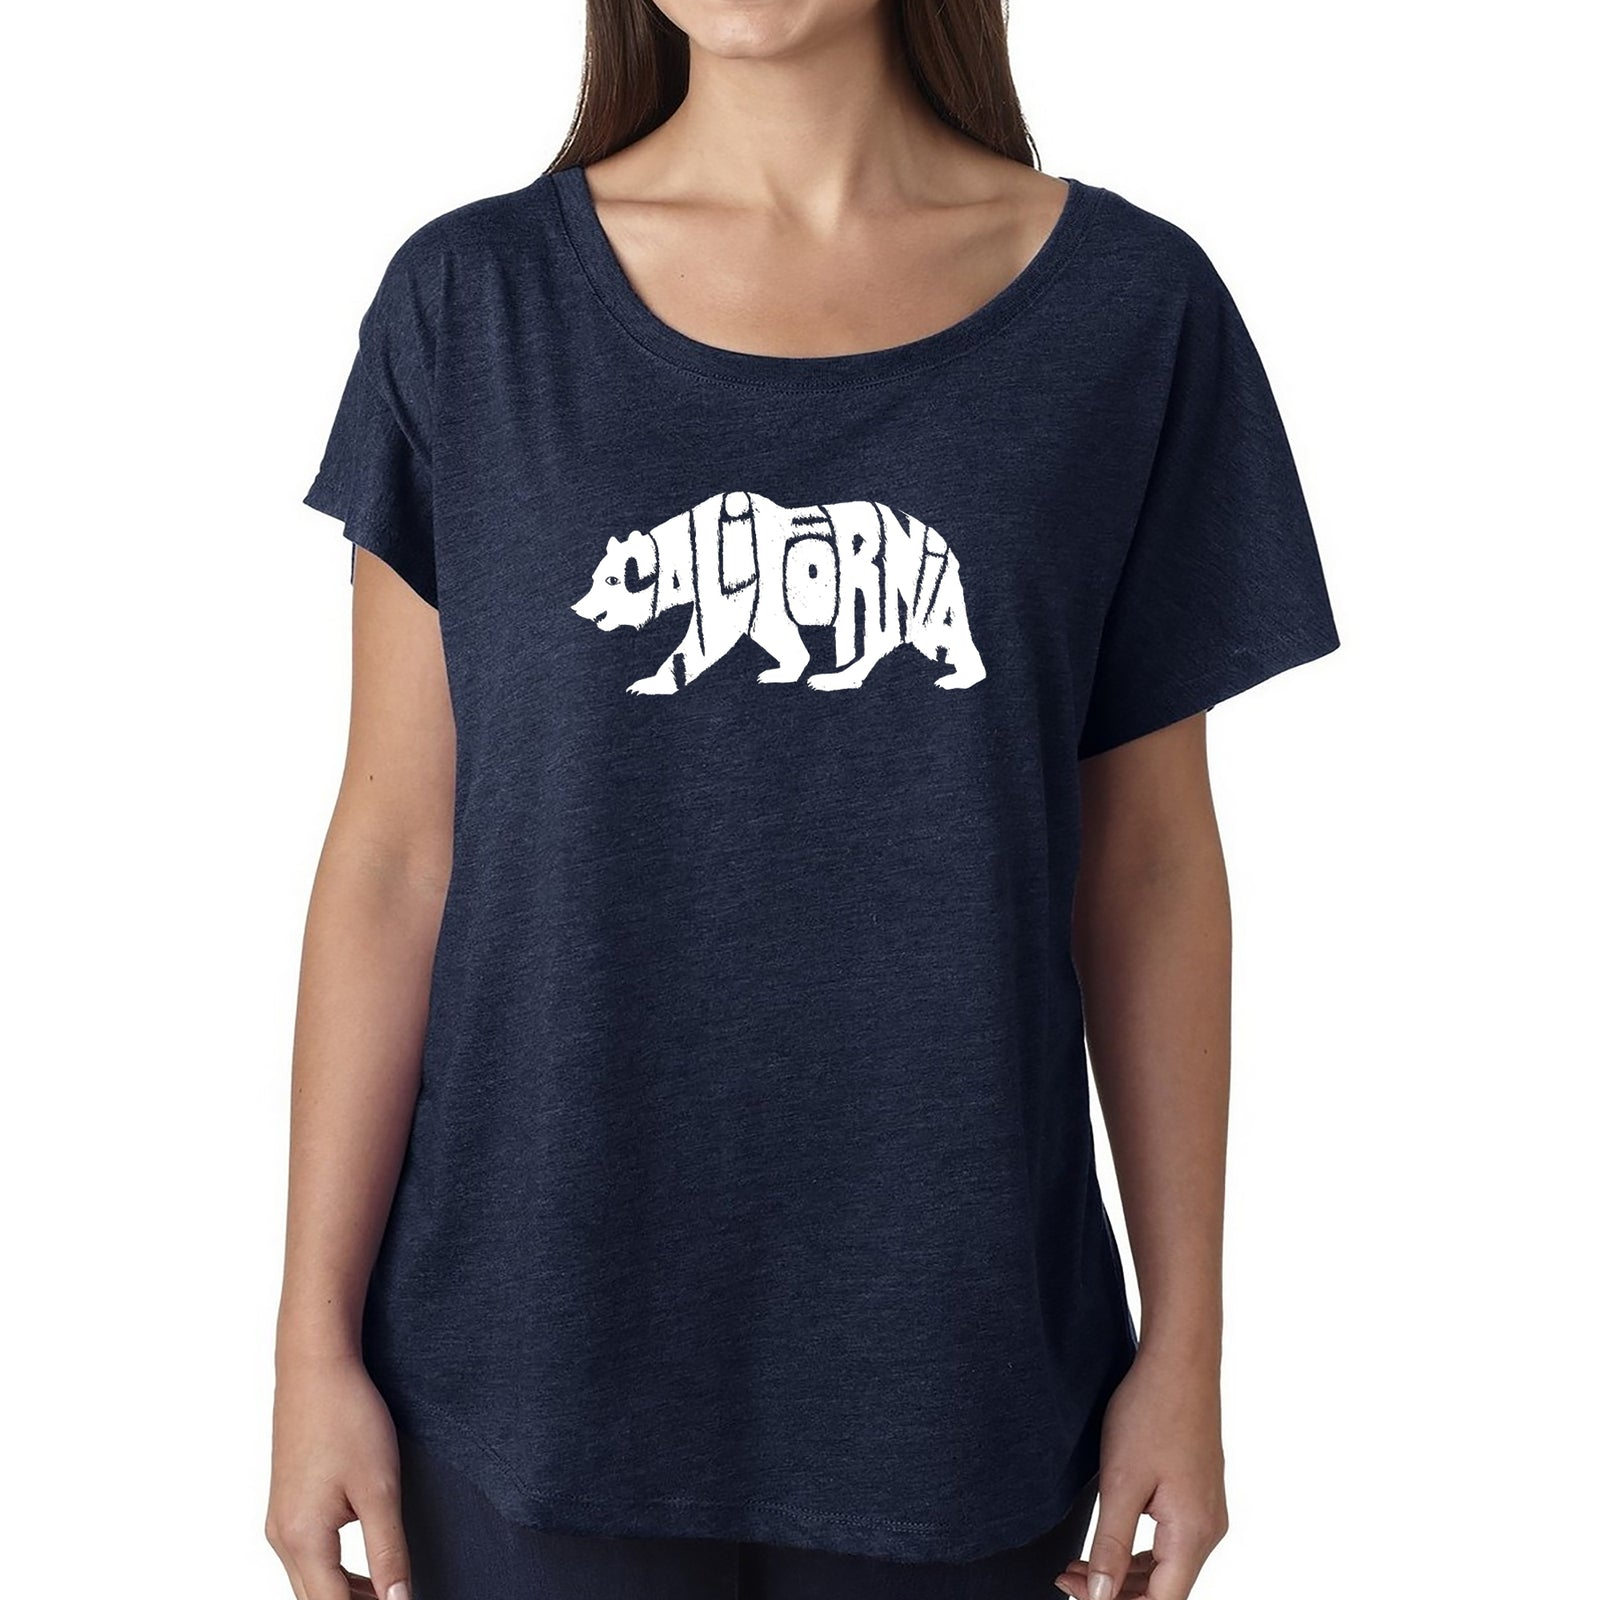 Women's Loose Fit Dolman Cut Word Art Shirt - California Bear